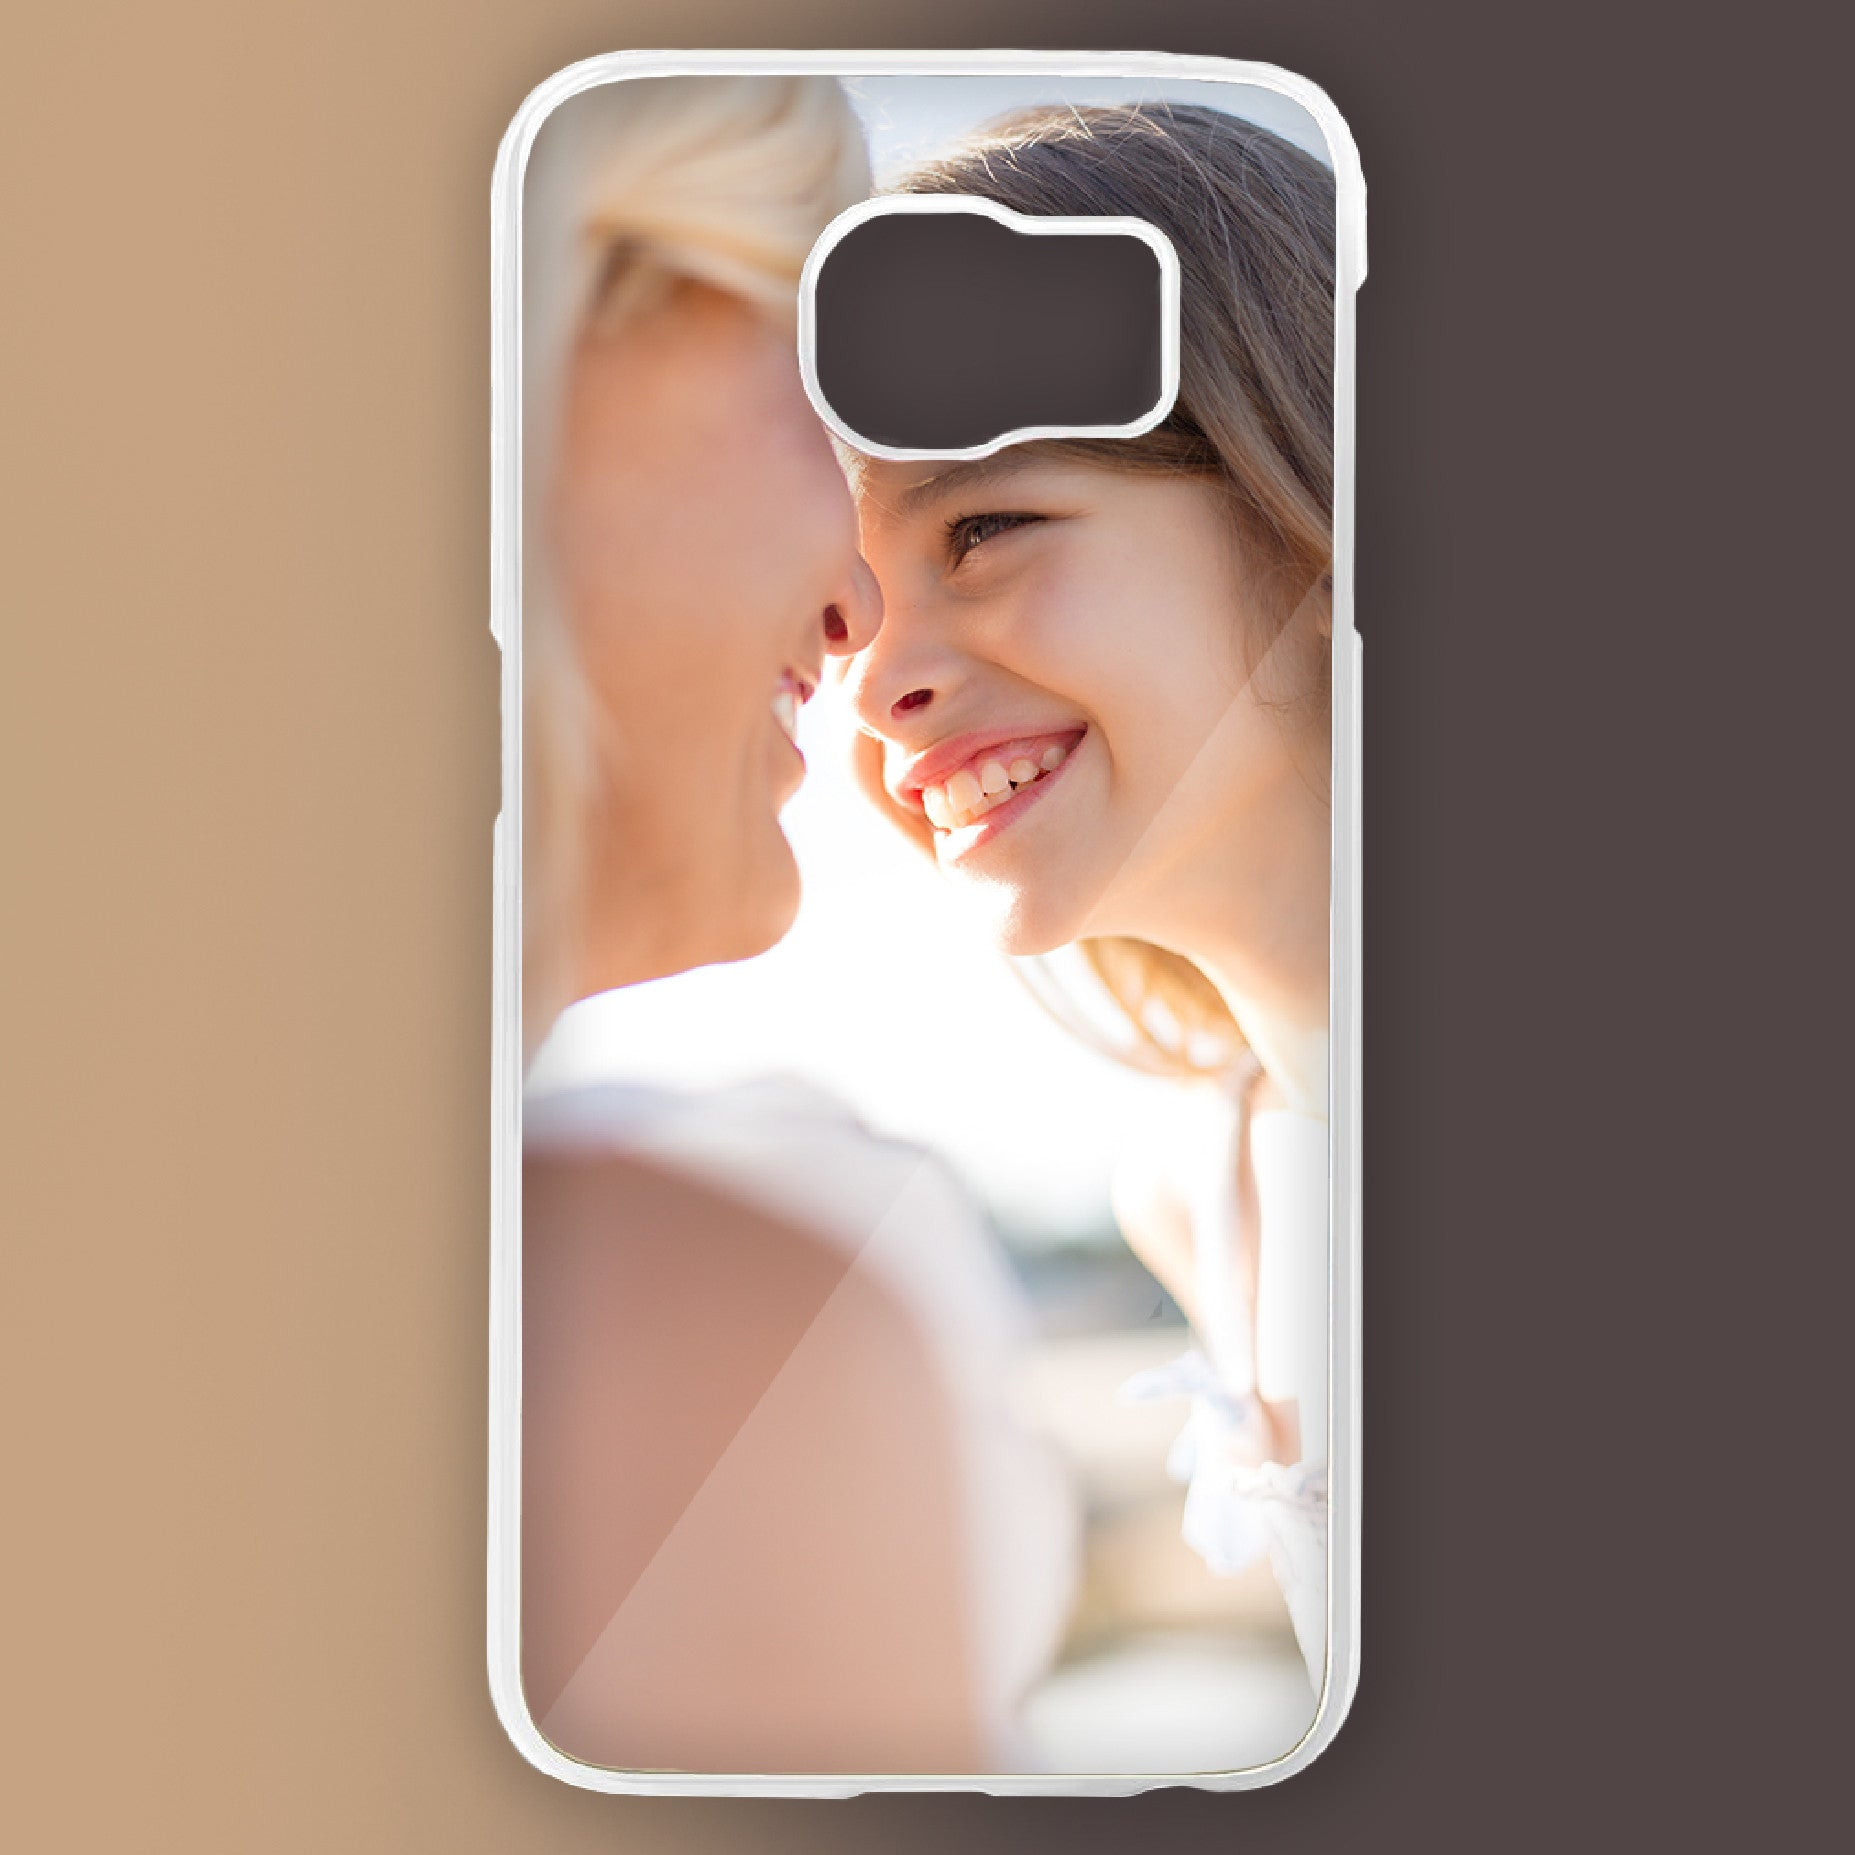 Creative Design Personalised Plastic Phone Case / Phone cover & wallet For iPhone and Samsung Galaxy